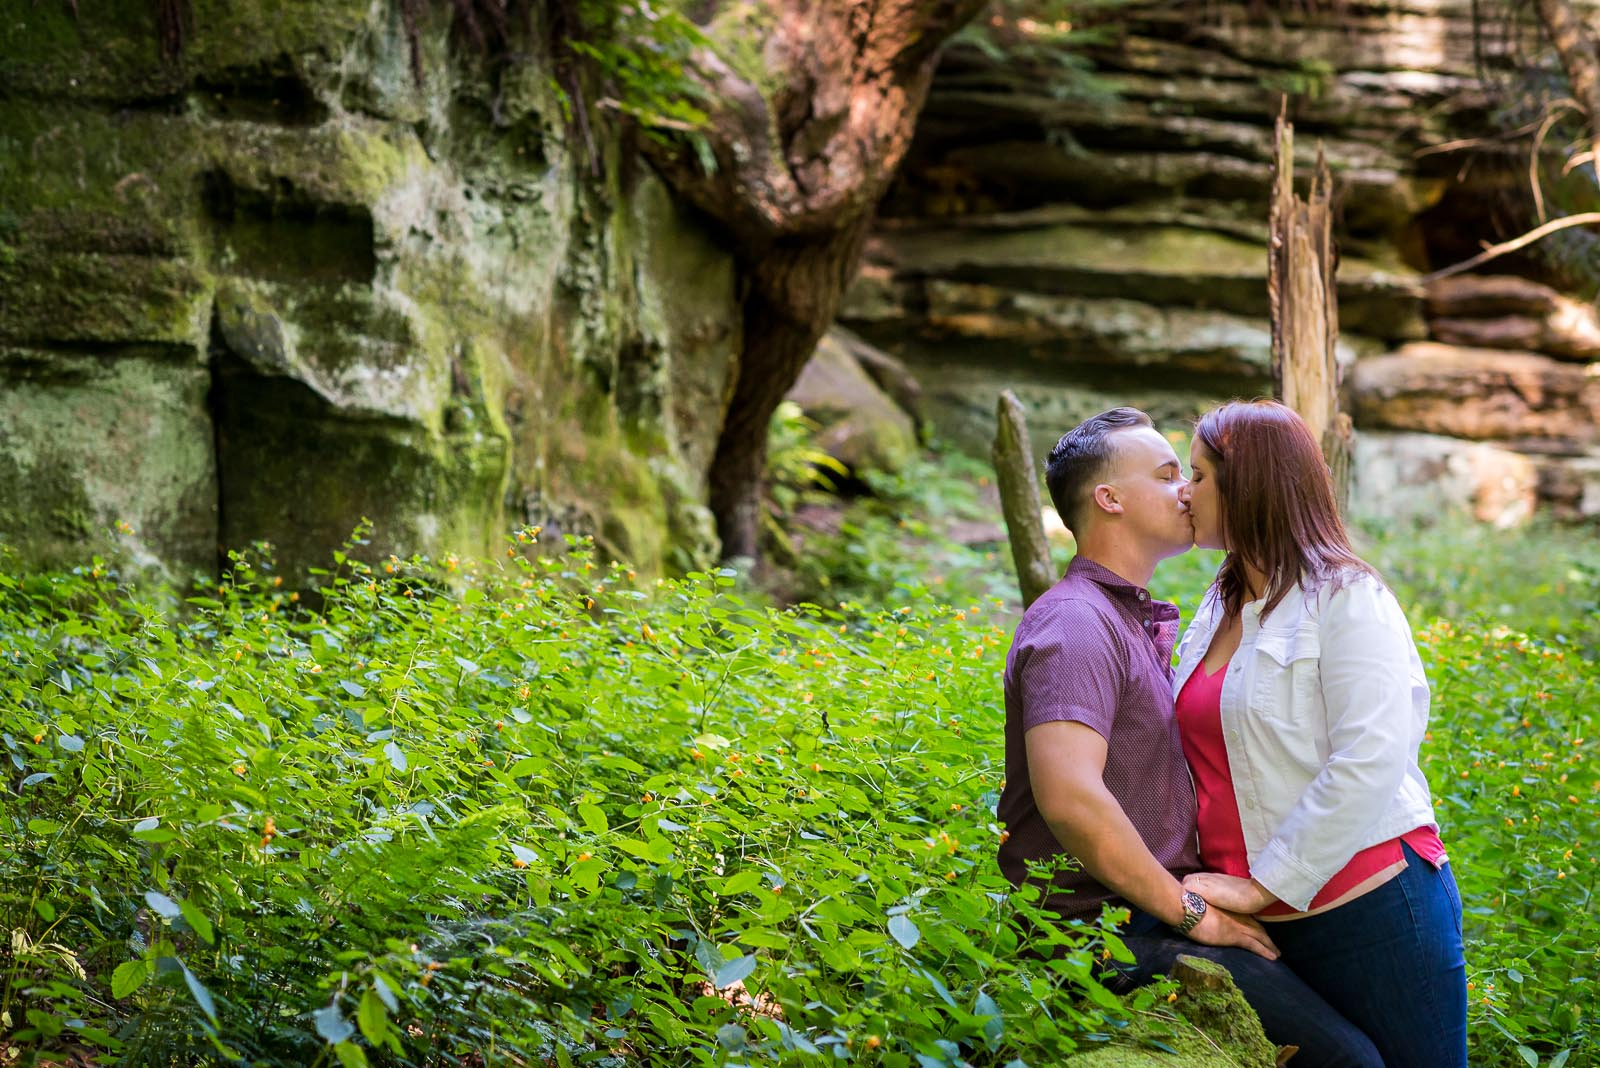 Eric_and_Christy_Photography_Blog_Paige_Eric-3